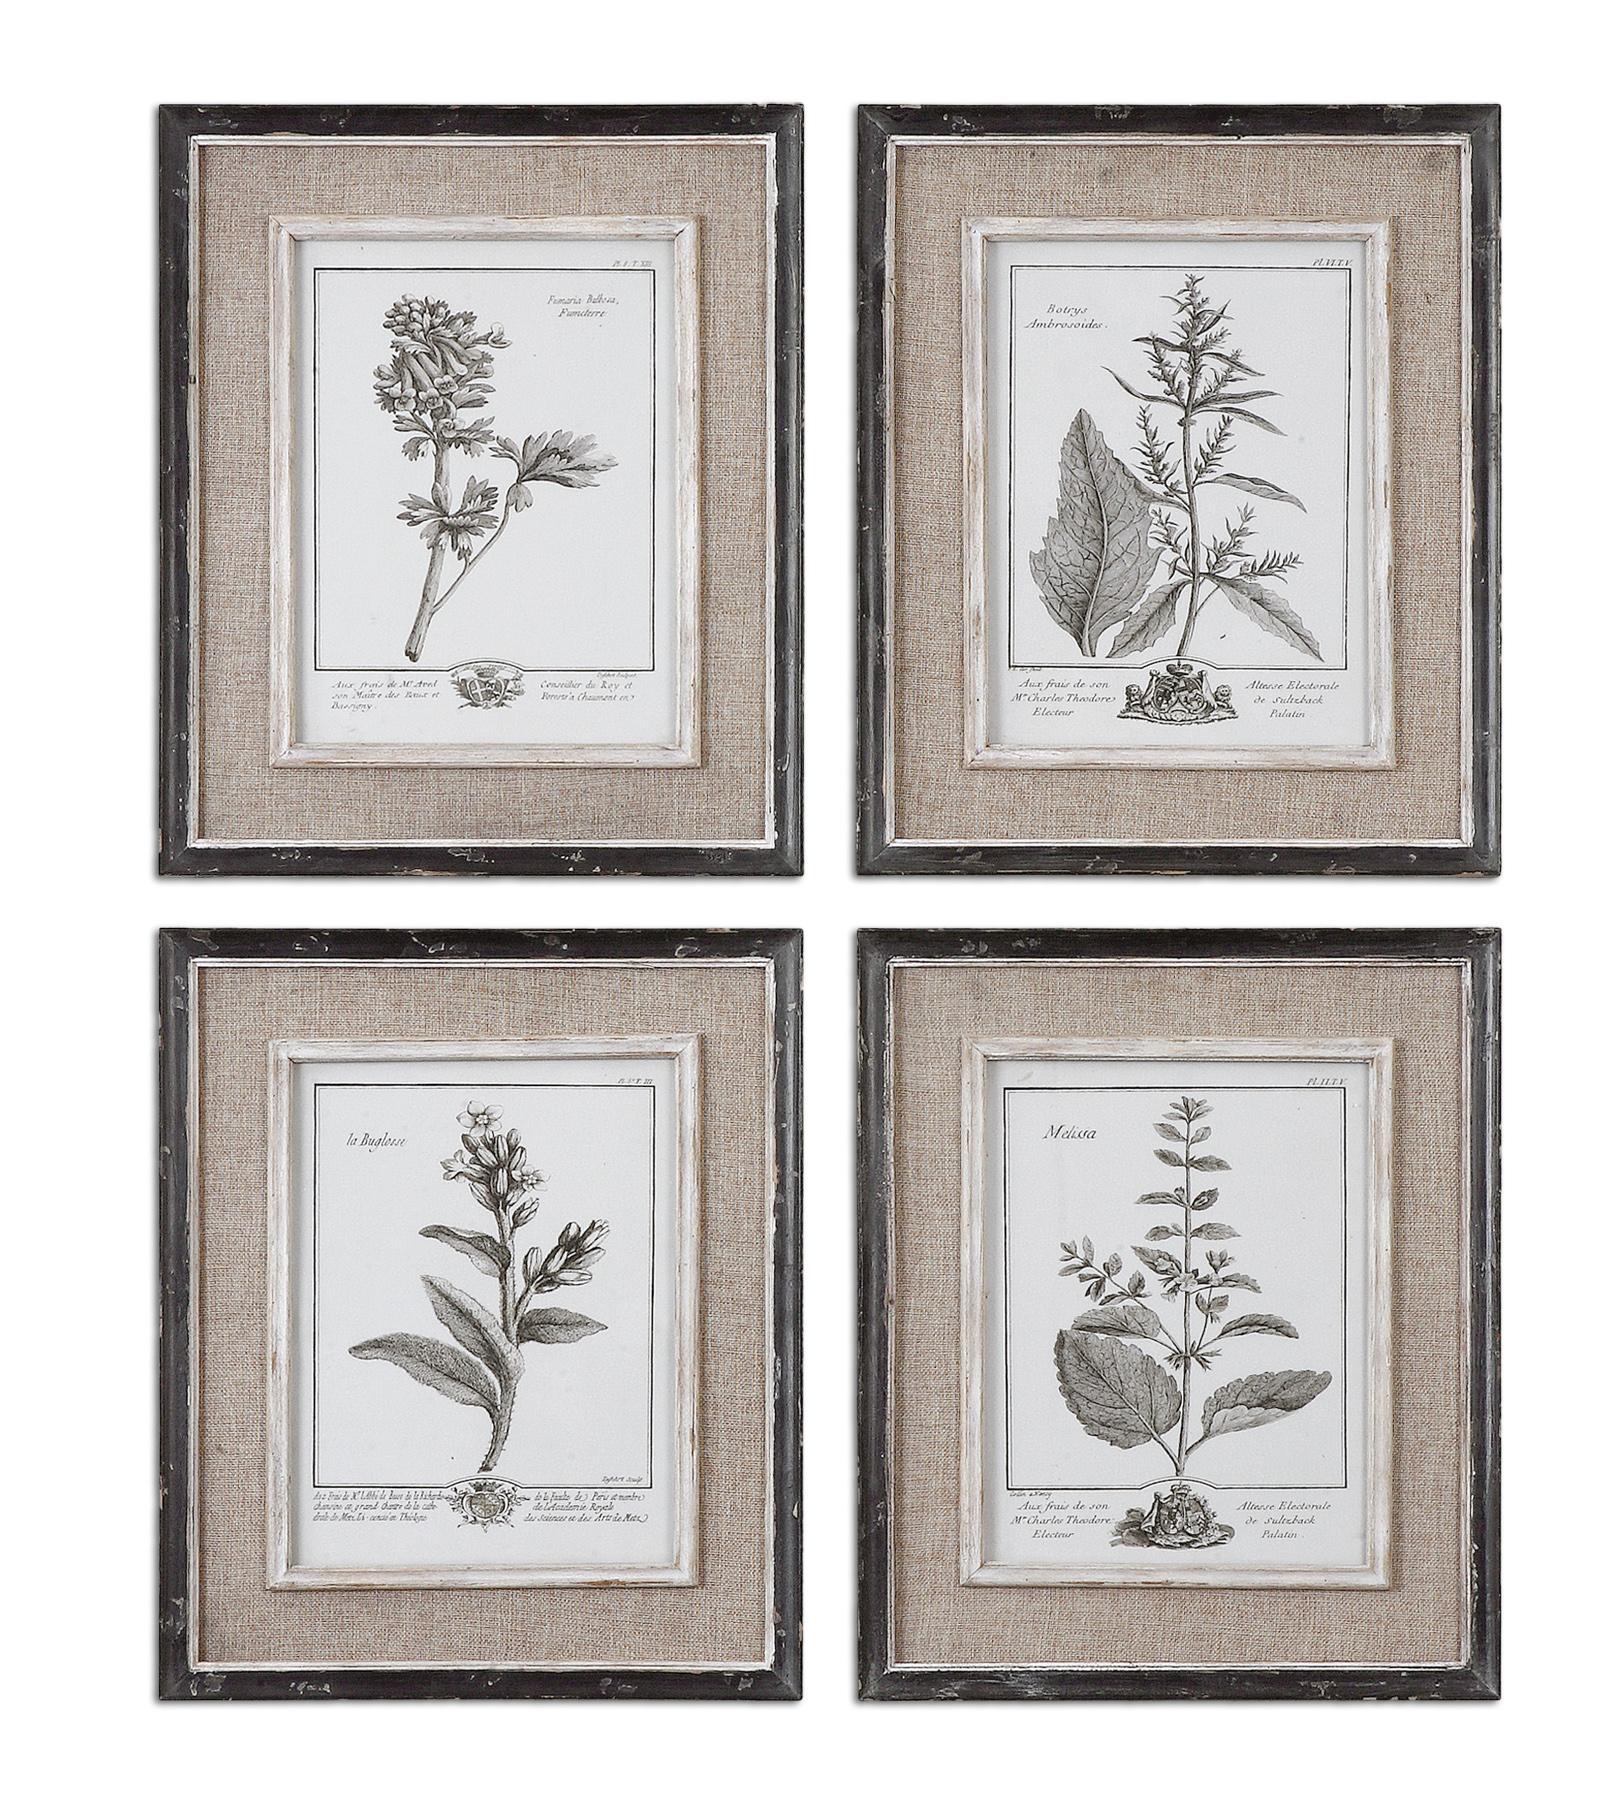 Uttermost Art Casual Grey Study Set of 4 - Item Number: 32510